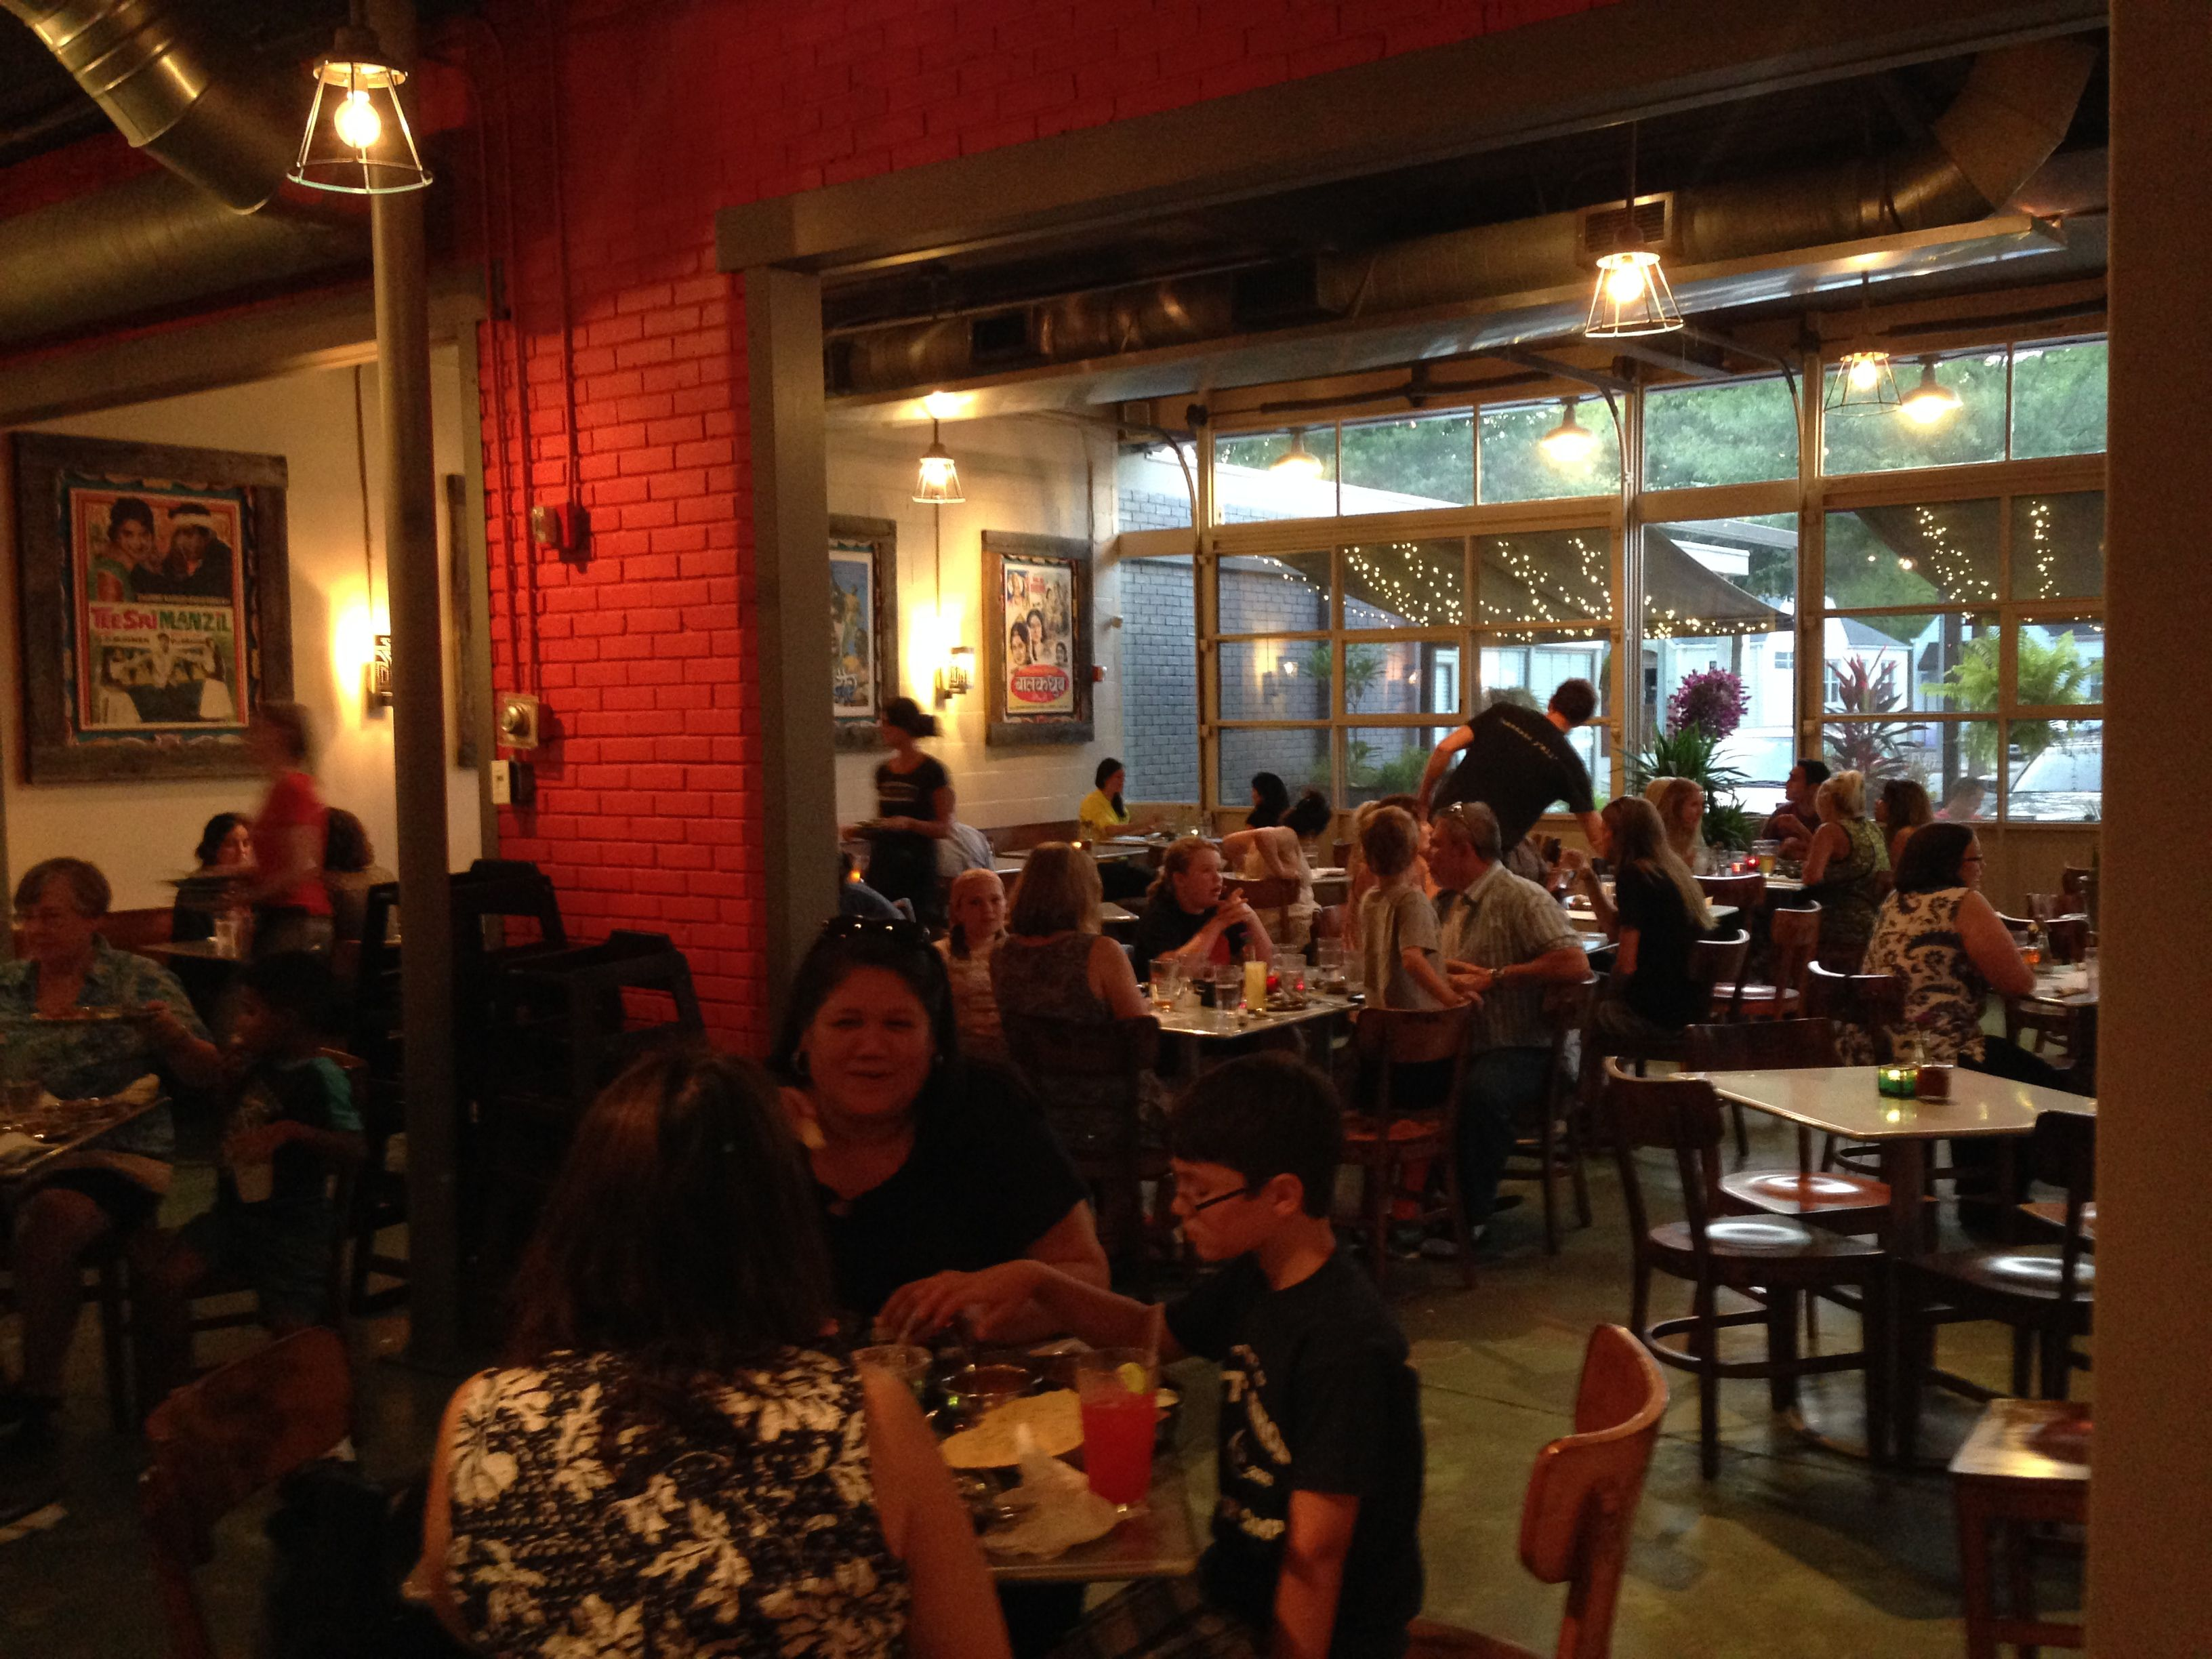 Love the vibe @chaipanidecatur, too! Thank you for @DineOutForKids once again